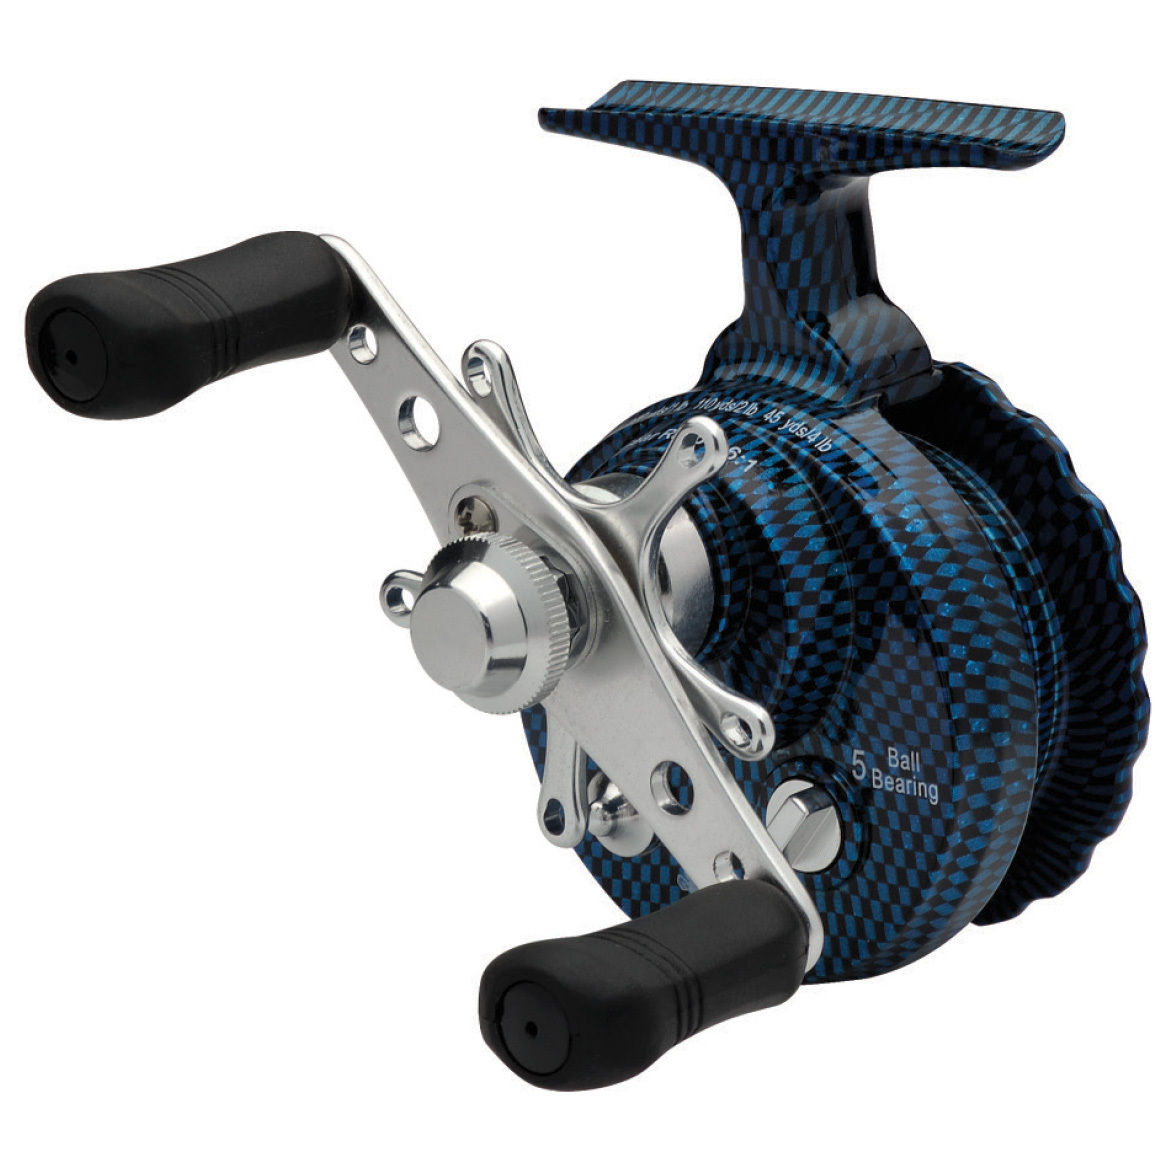 "Eagle Claw Blue Inline Ice Reel. Smooth cranking performance at INCREDIBLE SAVINGS! Grab some great times on the ice without breaking the bank! The Eagle Claw Blue Inline Reel gives you the features you need at an outstanding price. Reel in the features: 5 ball bearing construction for exceptionally smooth performance2.6:1 gear ration... line retrieve in / crank: 15.75""Smooth, Teflon adjustable star dragFree spool release buttonLightweight nylon body with aluminum spoolReduced line twist. - $24.99"